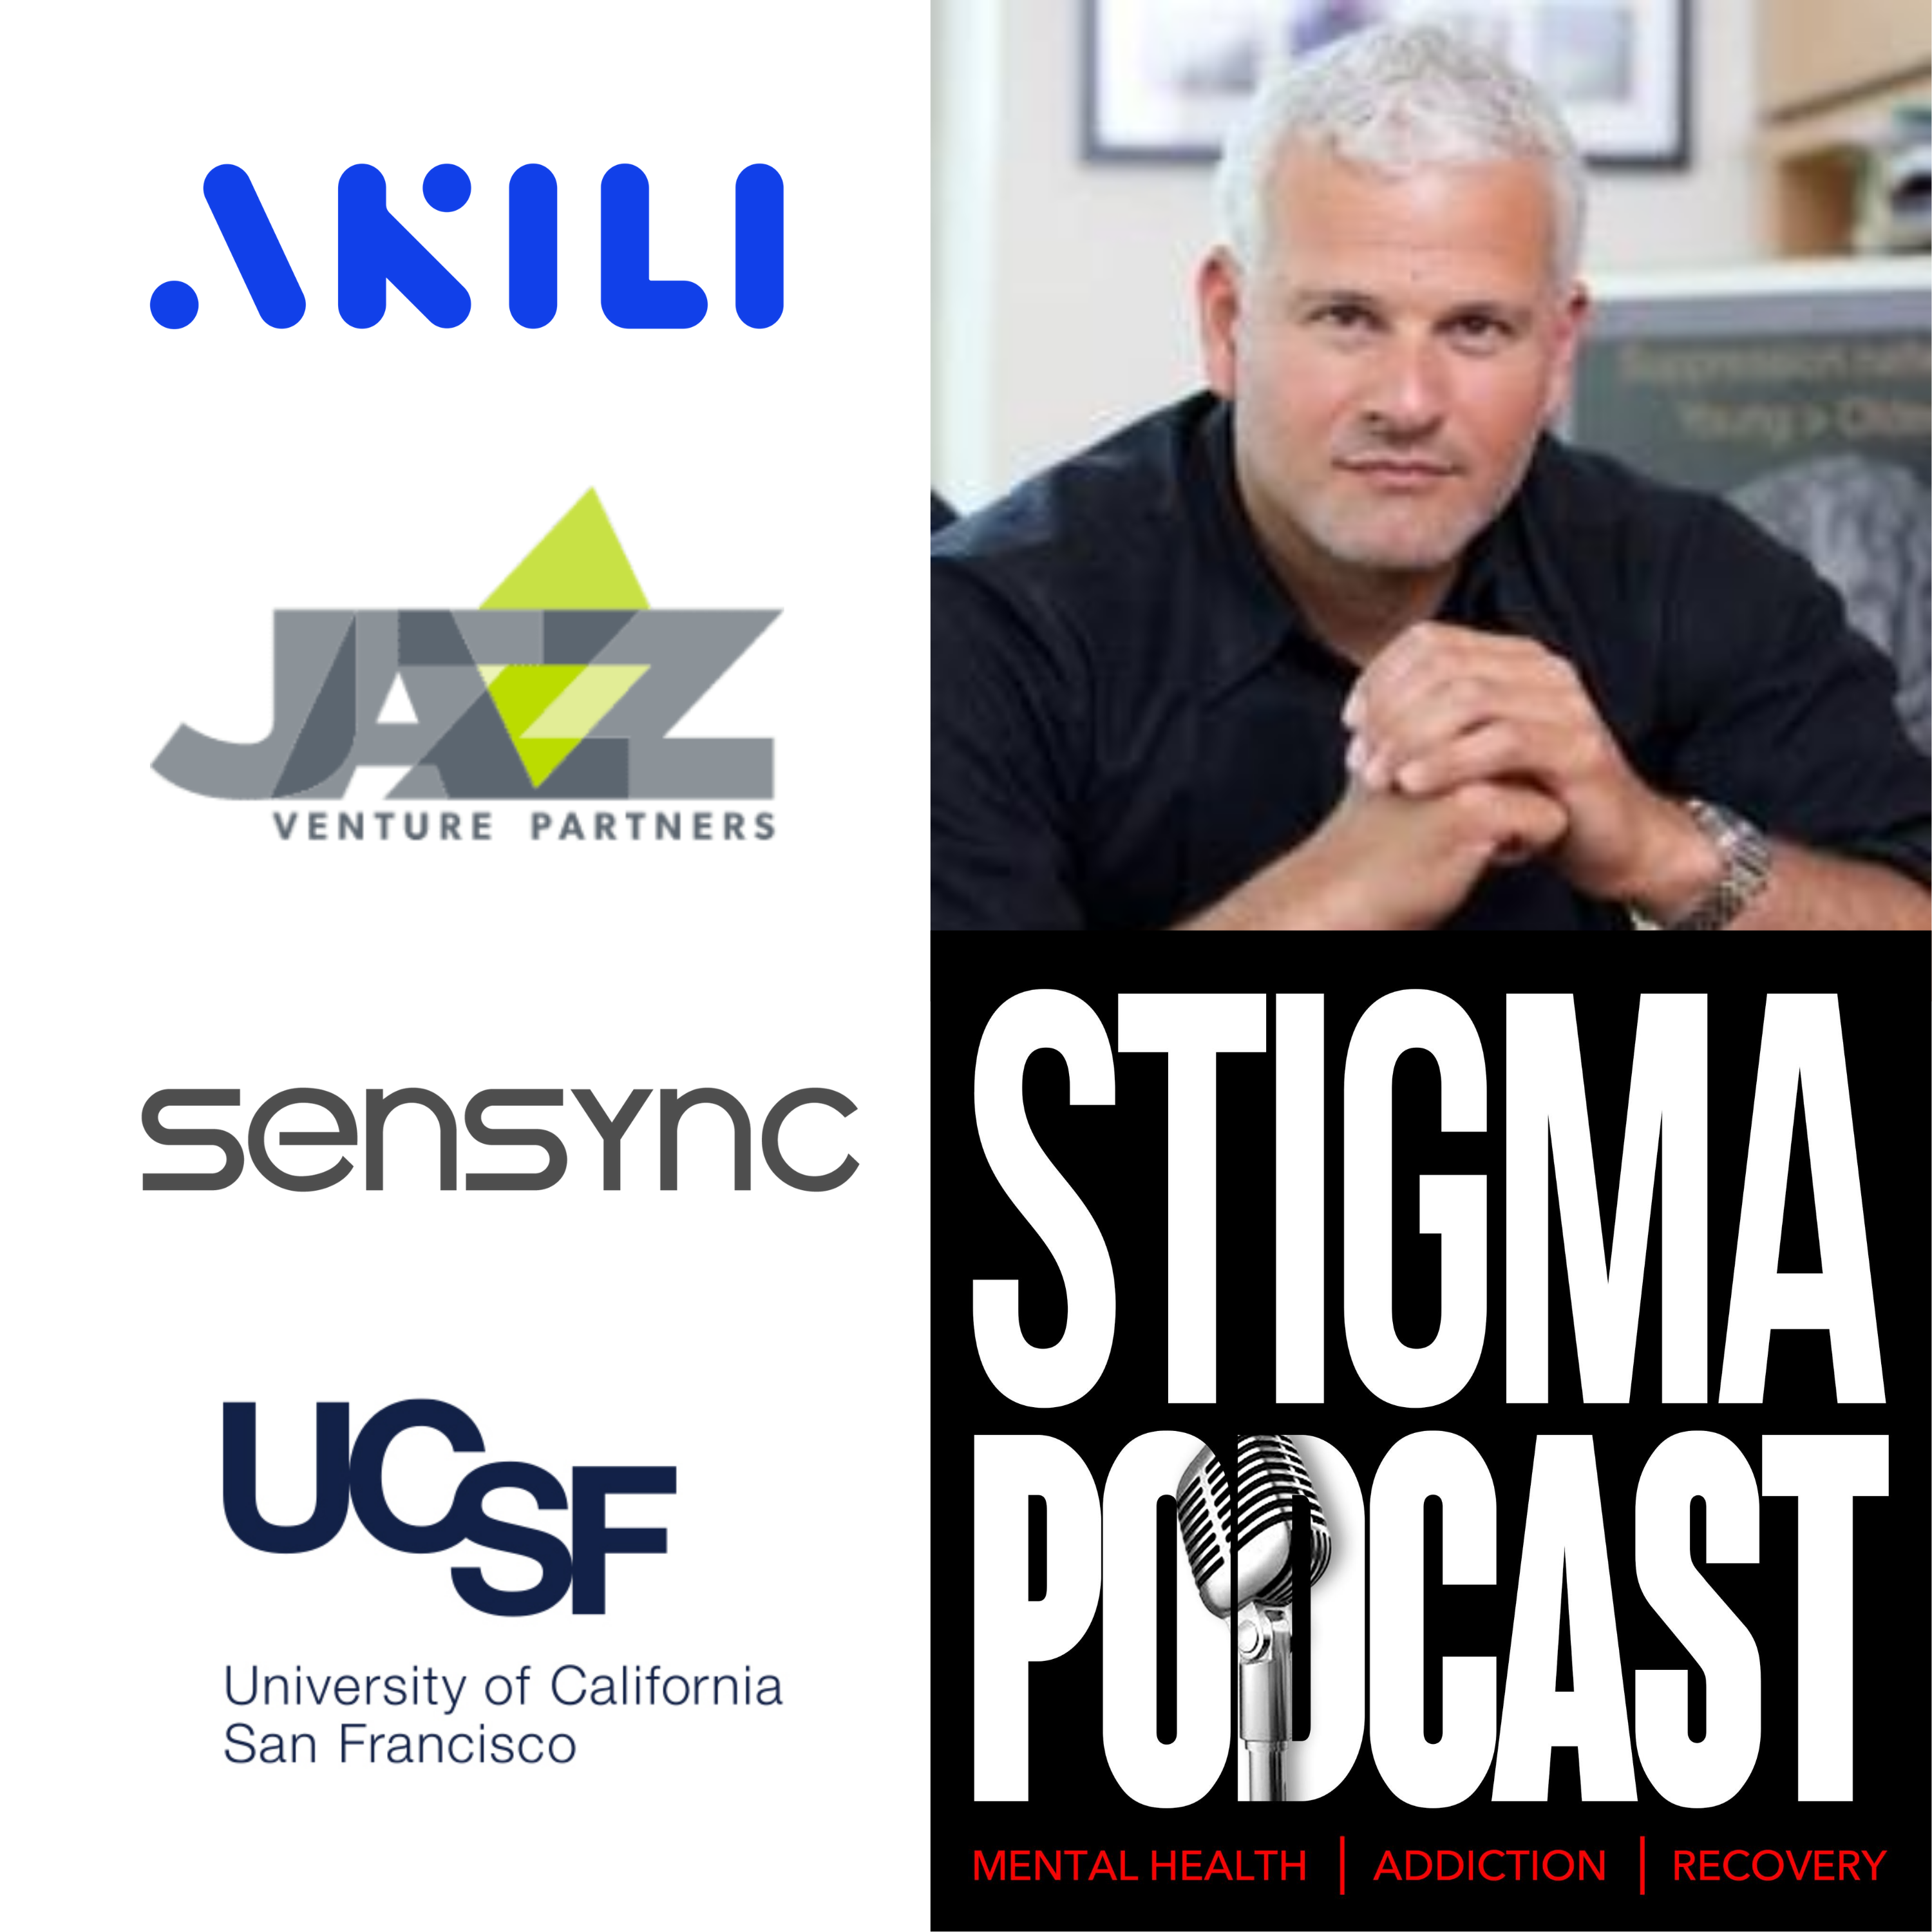 Stigma Podcast - Mental Health - #67 - Video Games as Medicine with Dr. Adam Gazzaley, Founder of Akili Interactive